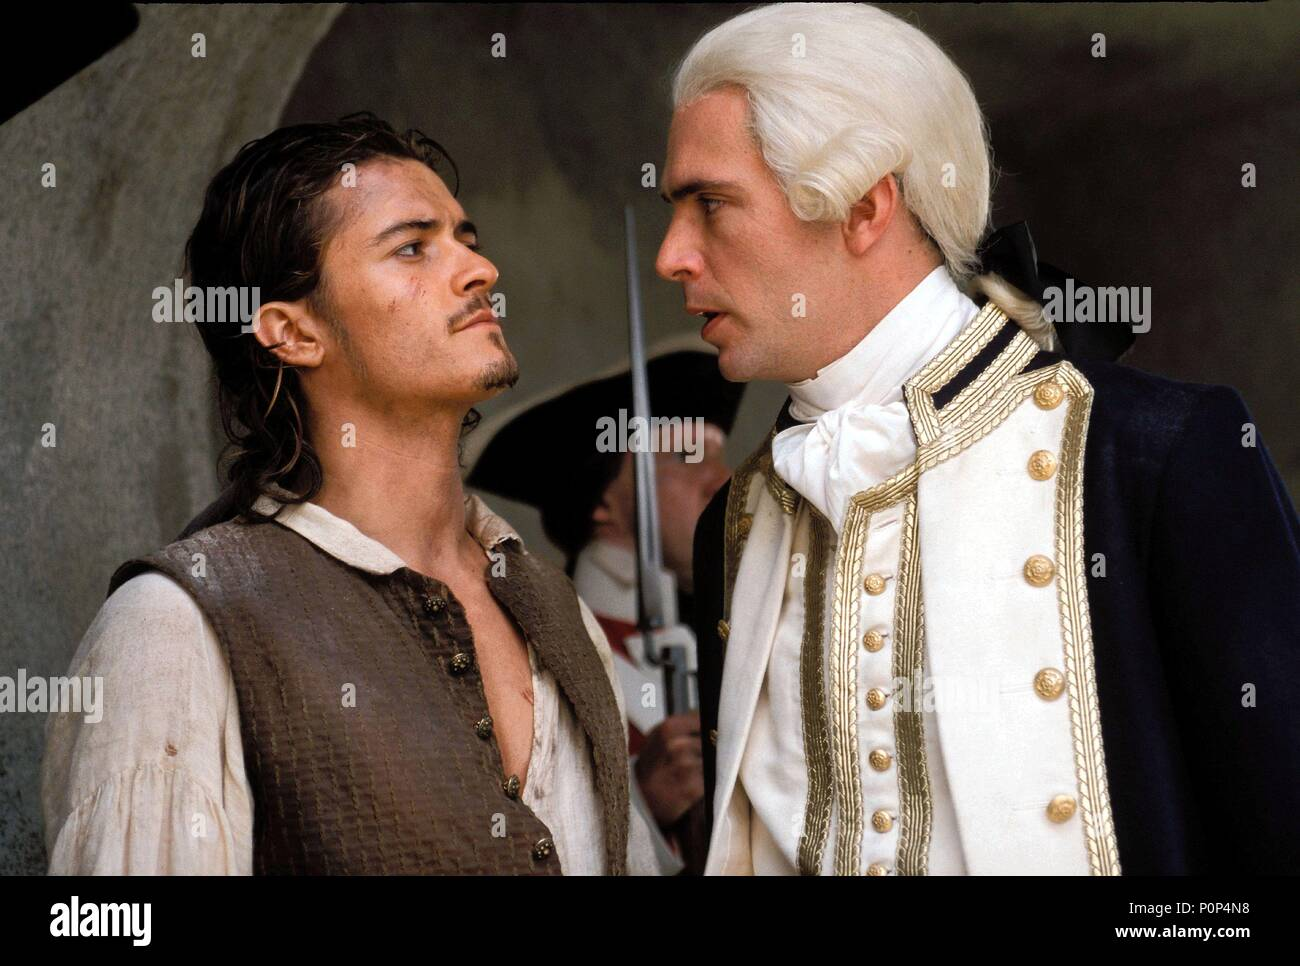 Original Film Title: PIRATES OF THE CARIBBEAN: THE CURSE OF THE BLACK PEARL.  English Title: PIRATES OF THE CARIBBEAN: THE CURSE OF THE BLACK PEARL.  Film Director: GORE VERBINSKI.  Year: 2003.  Stars: JACK DAVENPORT; ORLANDO BLOOM. Credit: TOUCHSTONE PICTURES / Album - Stock Image